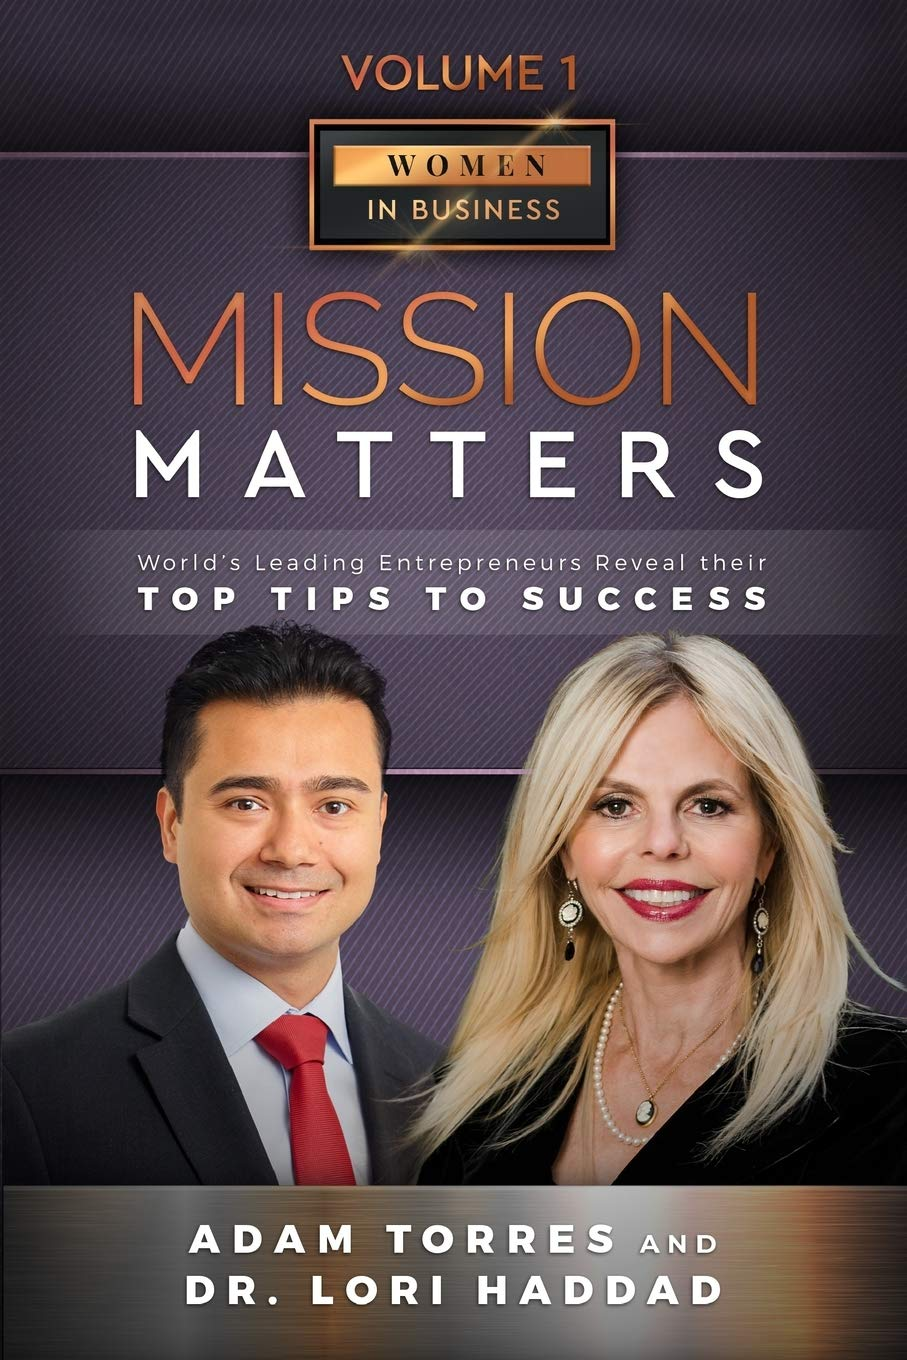 Mission Matters: World's Leading Entrepreneurs Reveal Their Top Tips To Success (Women in Business Vol.1 – Edition 3)